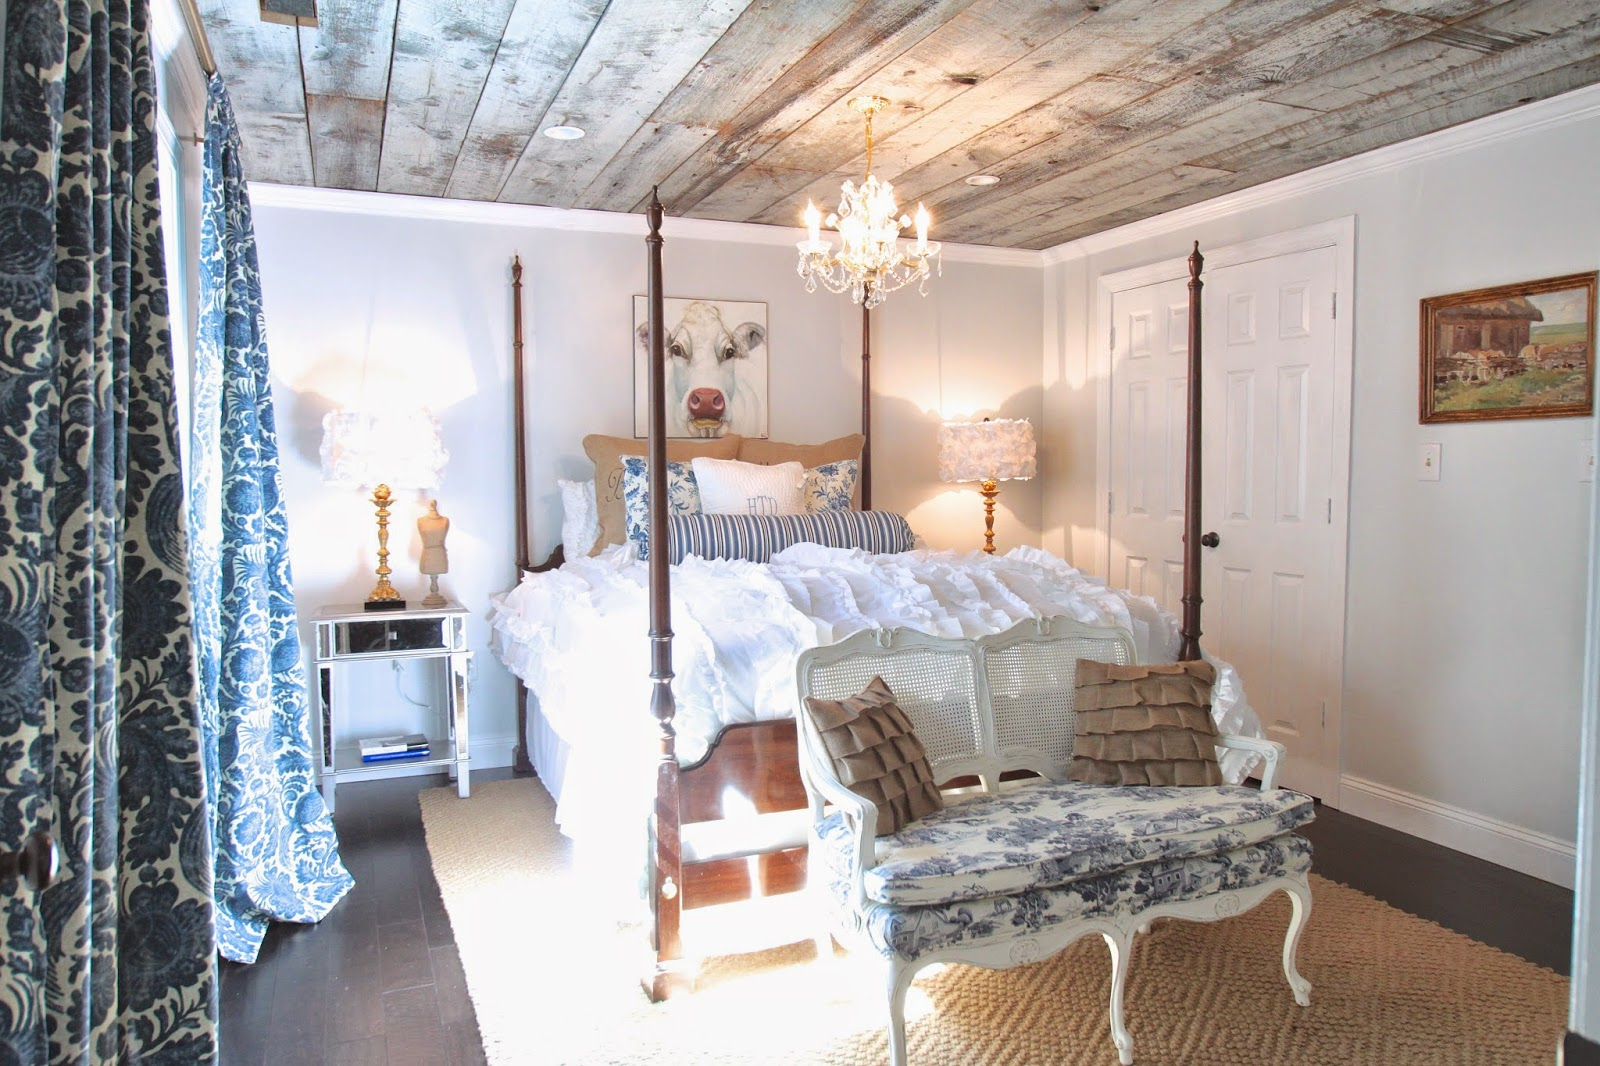 Adding interest to your ceilings stacy risenmay for Adding wood beams to ceiling